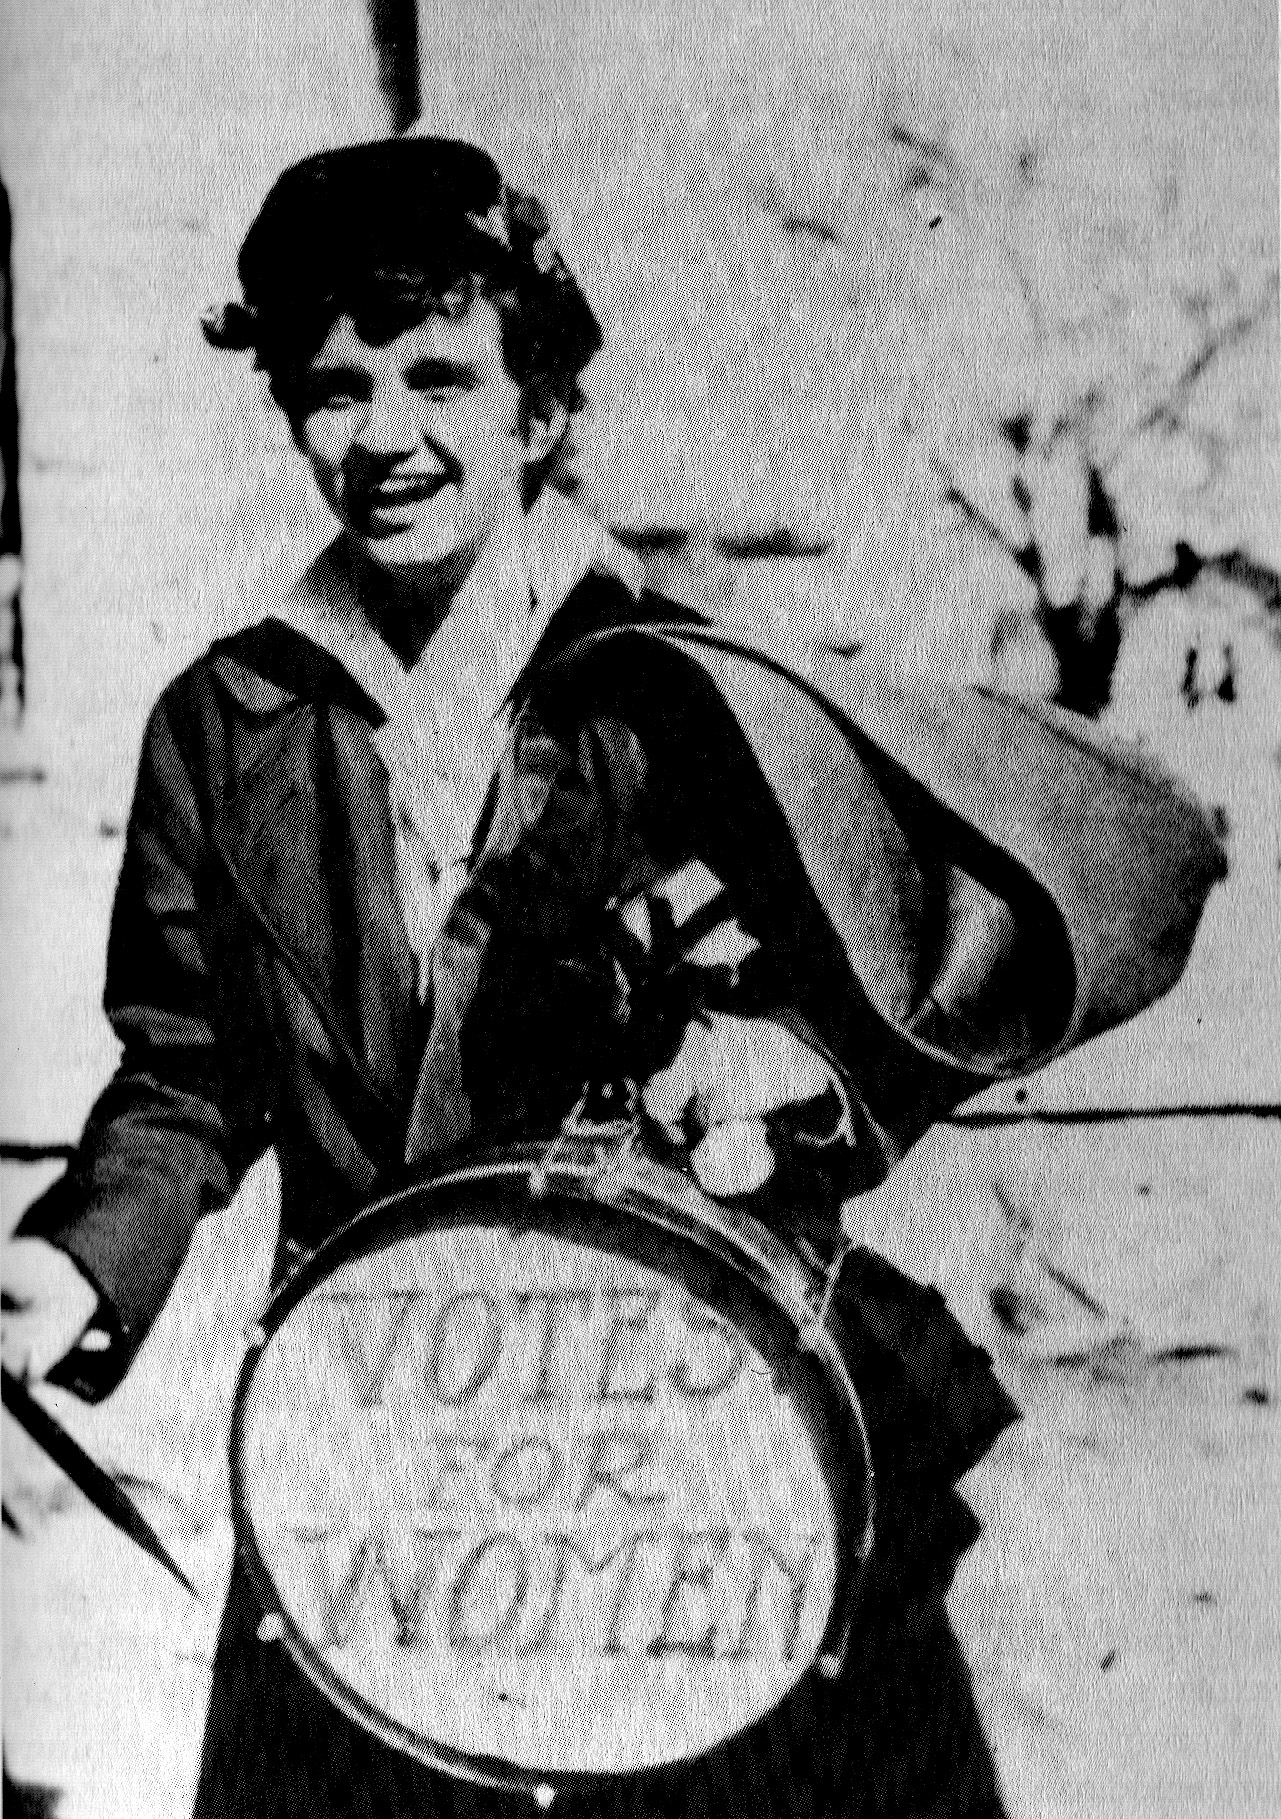 """The Campus Camera, Baylor University, 31 April 1915, vol. 1,3. The Texas Collection, Baylor University, Waco, Texas.  In 1915 Baylor University women in Waco, Texas organized a suffrage club and """"beat the drum"""" in campus parades. Courtesy The Texas Collection, Baylor University, Waco, Texas."""